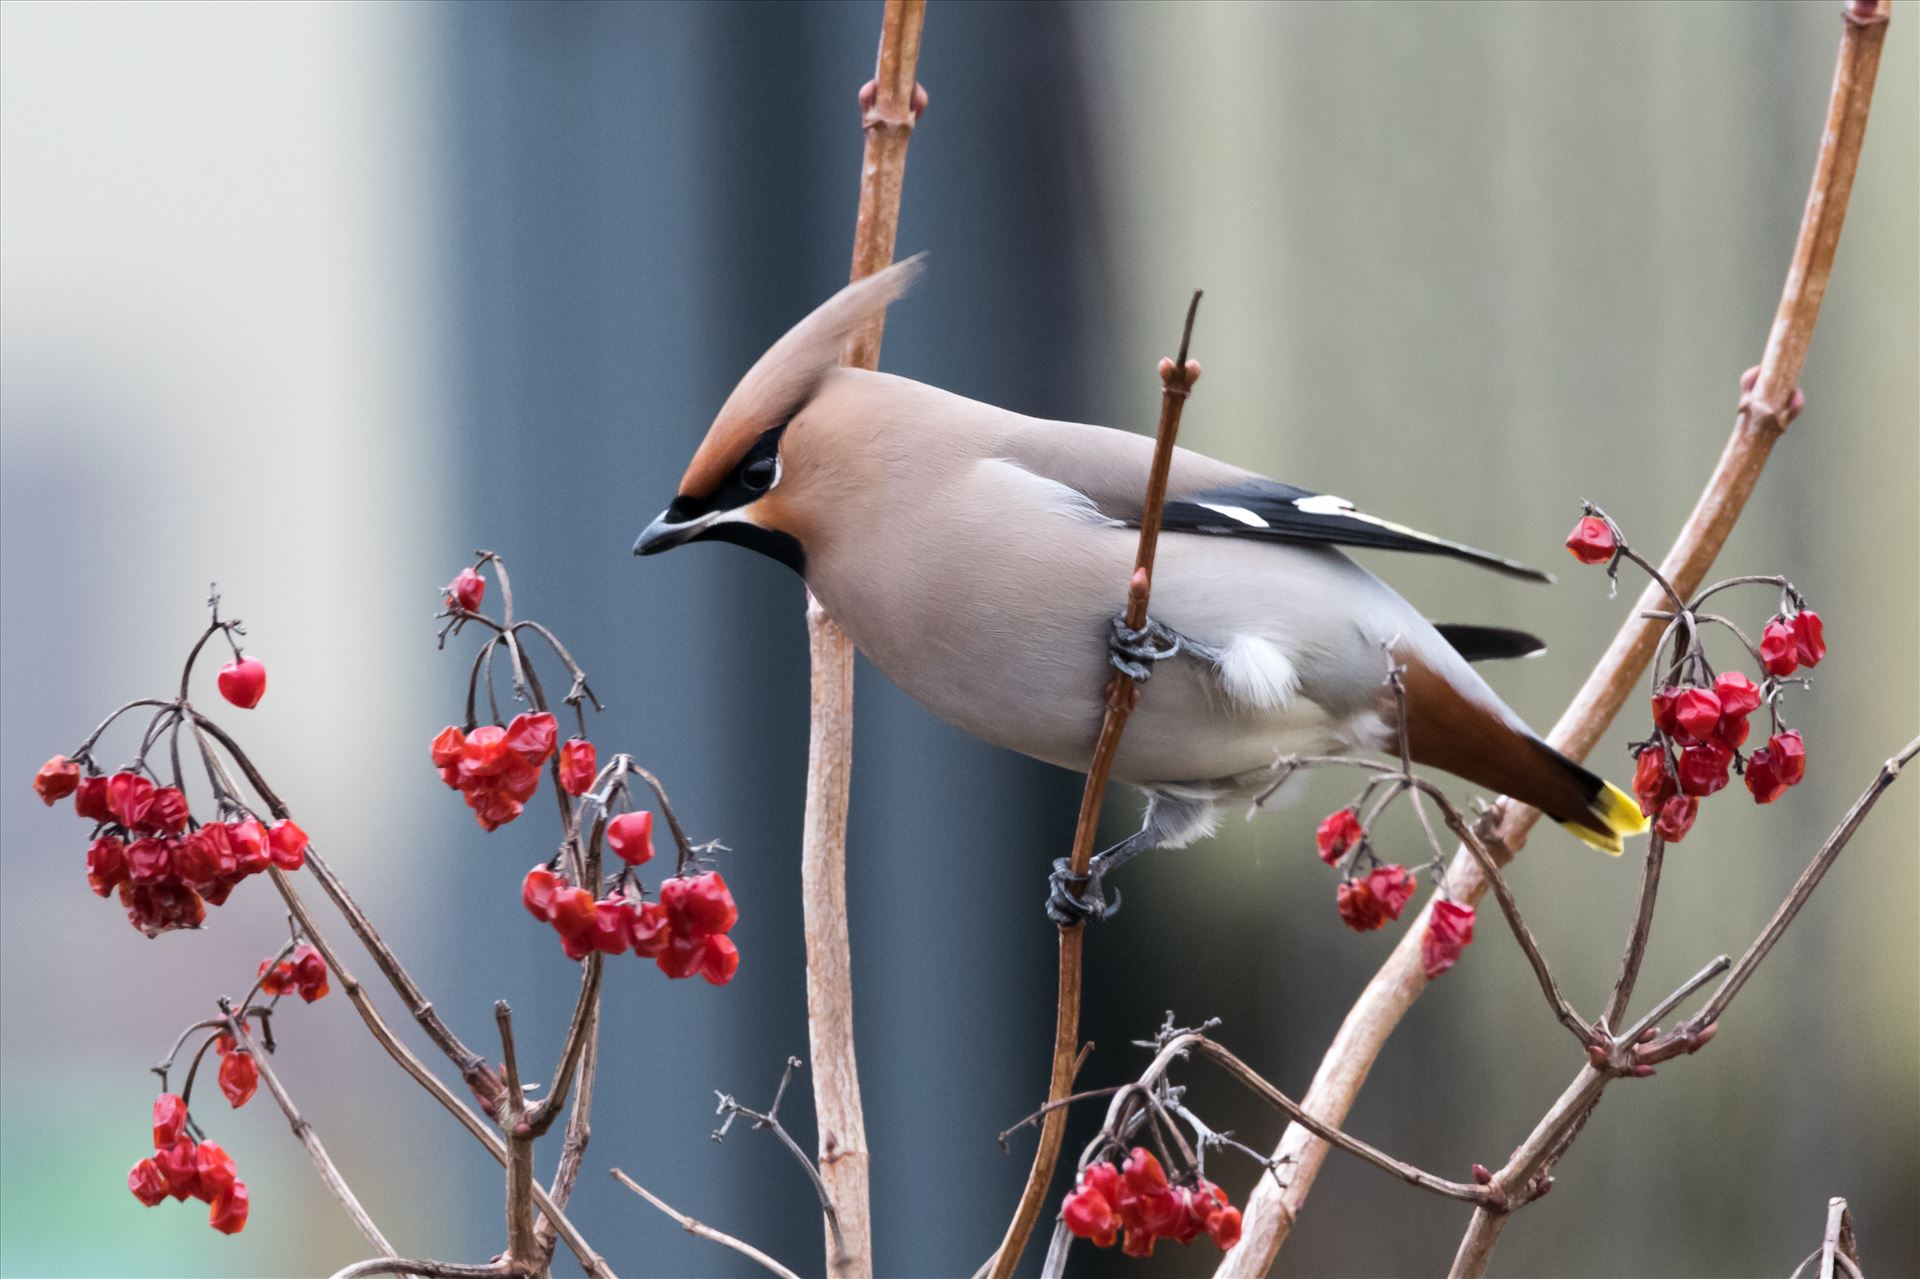 Waxwing RSPB Saltholme - A winter visiter, Waxwing, taken in January 2017 at RSPB Saltholme by AJ Stoves Photography